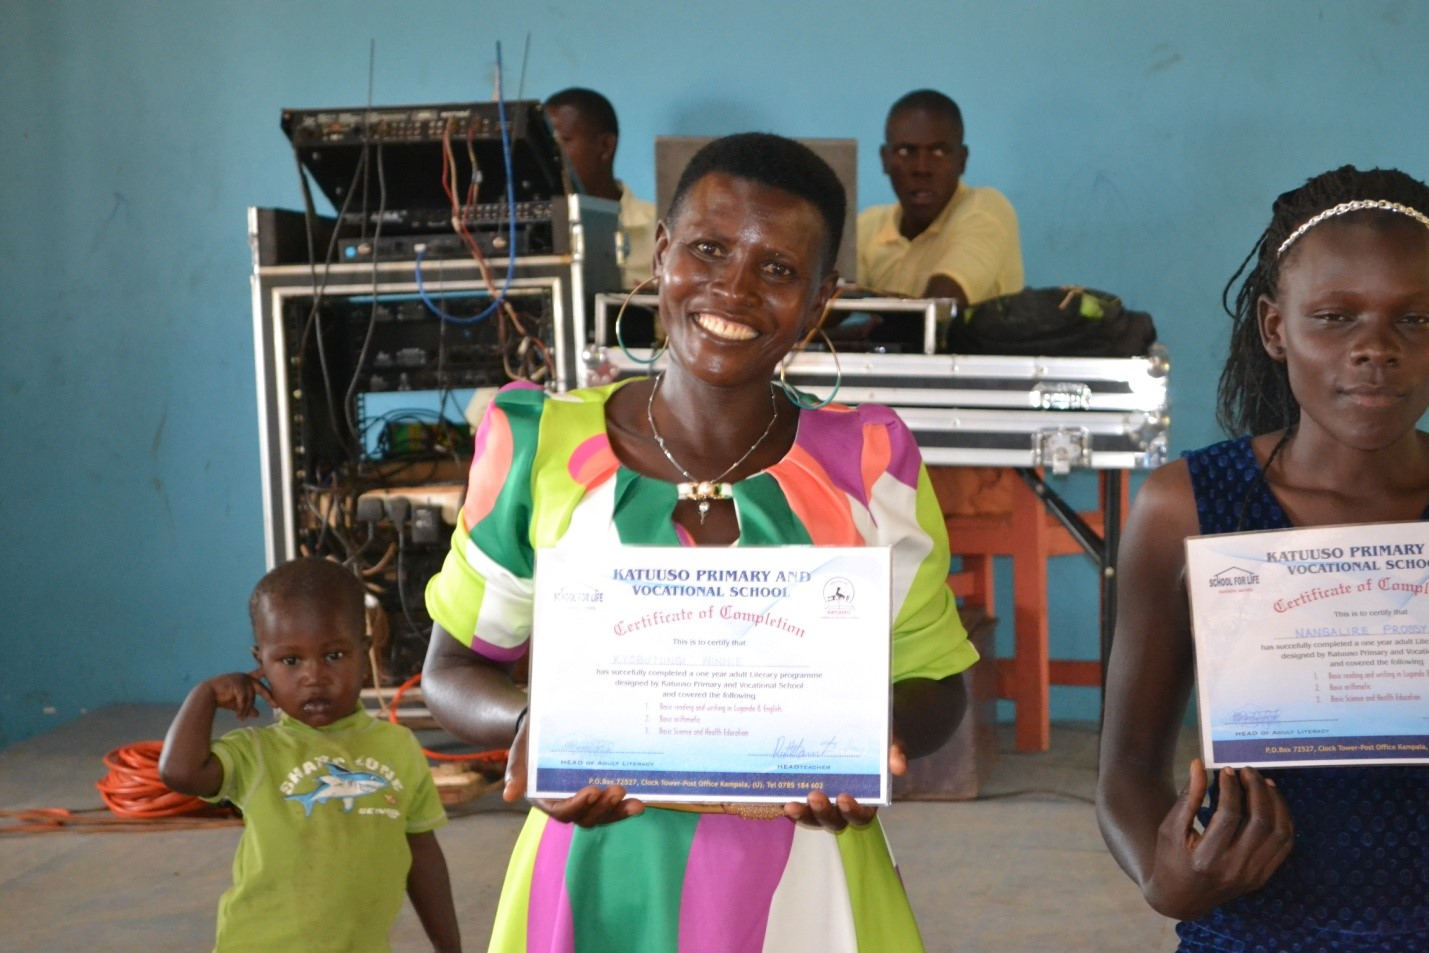 Winnie is one of the graduates from our Level 2 Adult Literacy Program.